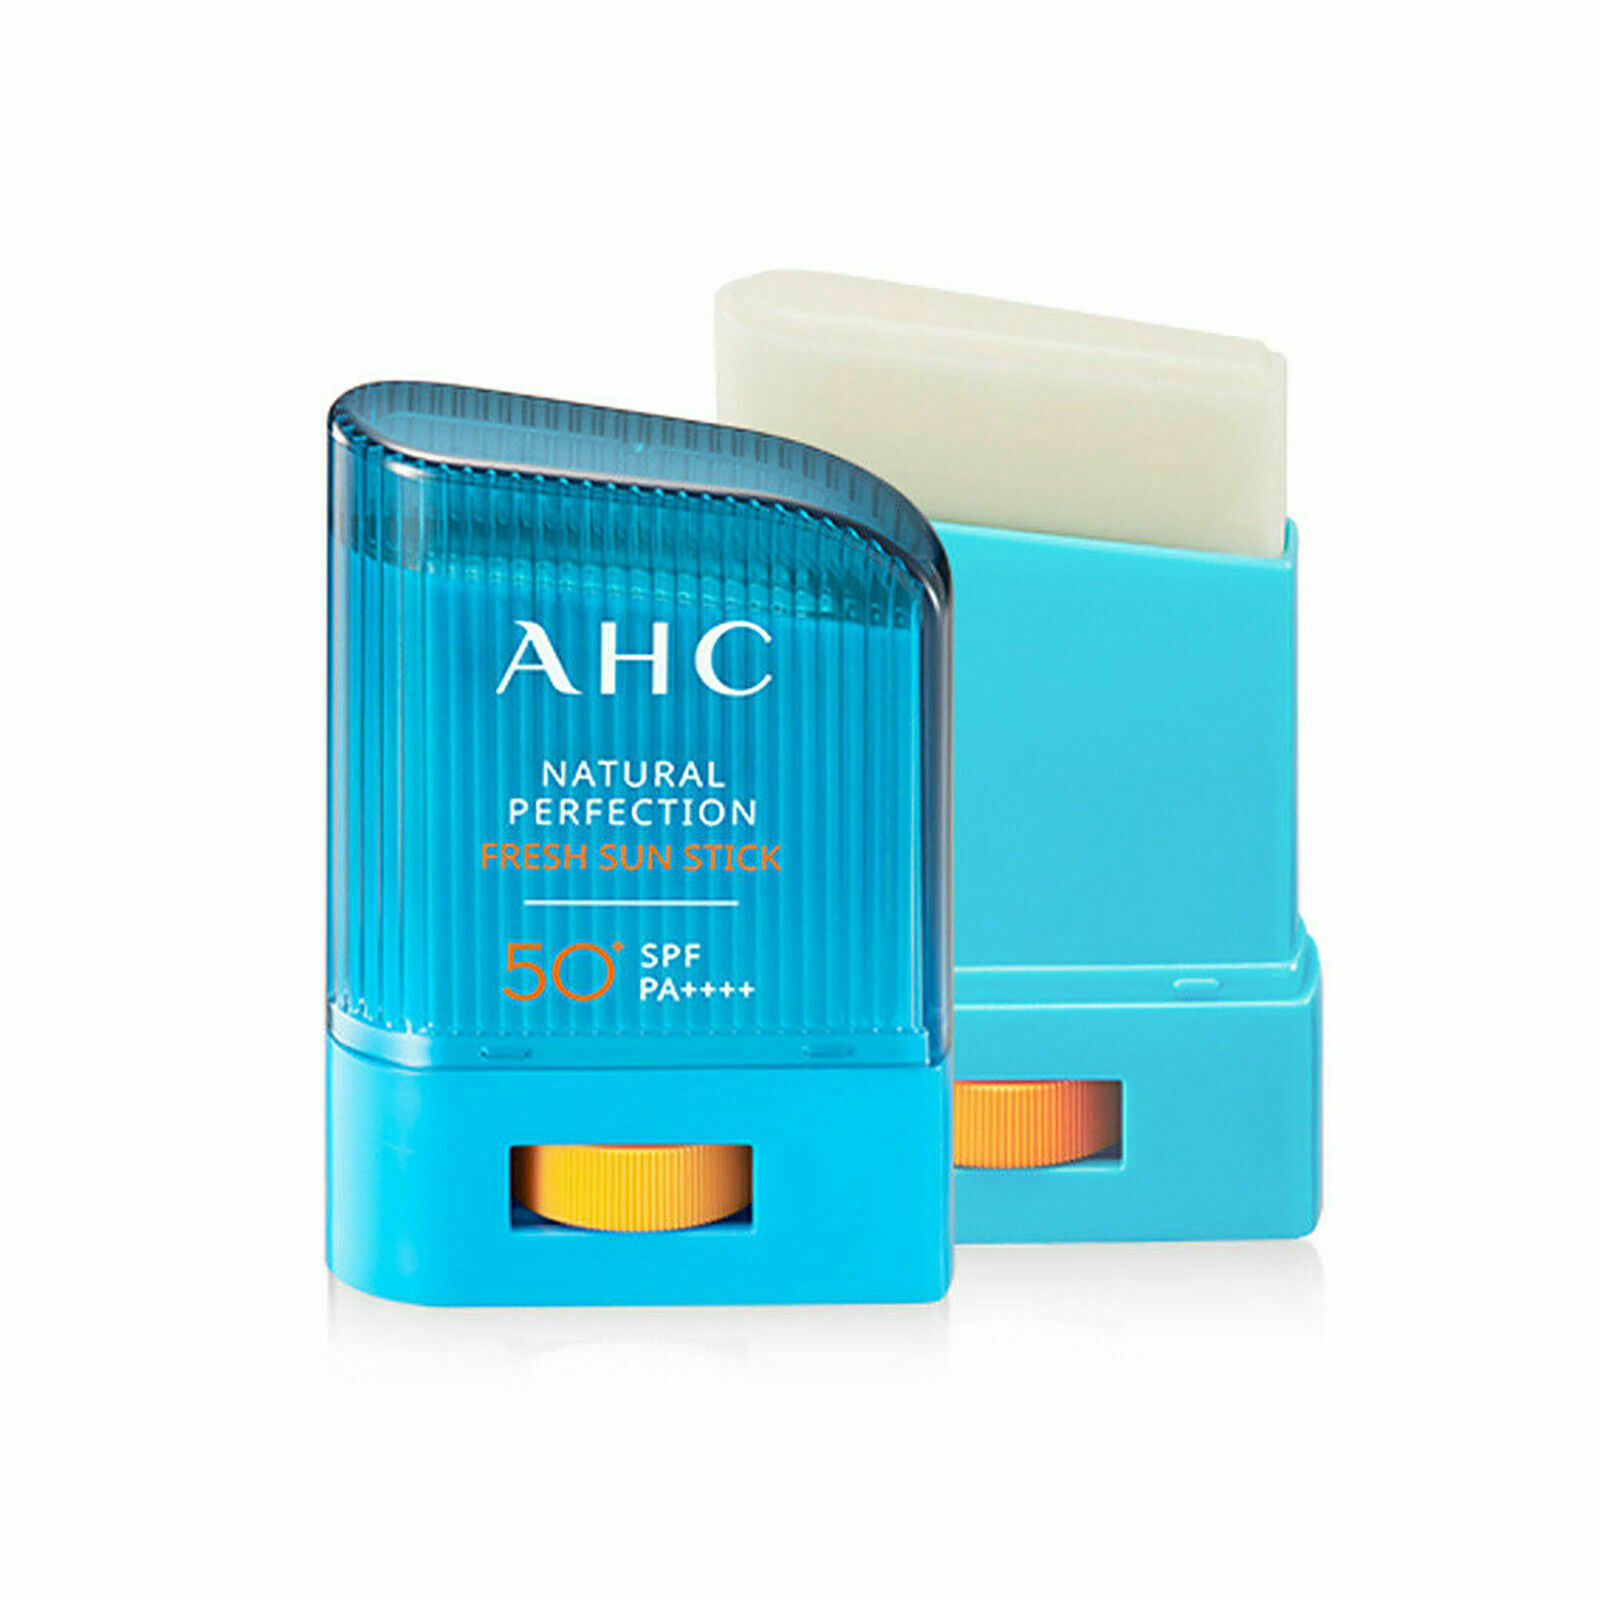 AHC Natural Perfection Fresh Sun Stick 14g UV Protection SPF50+/PA++++ K- Beauty